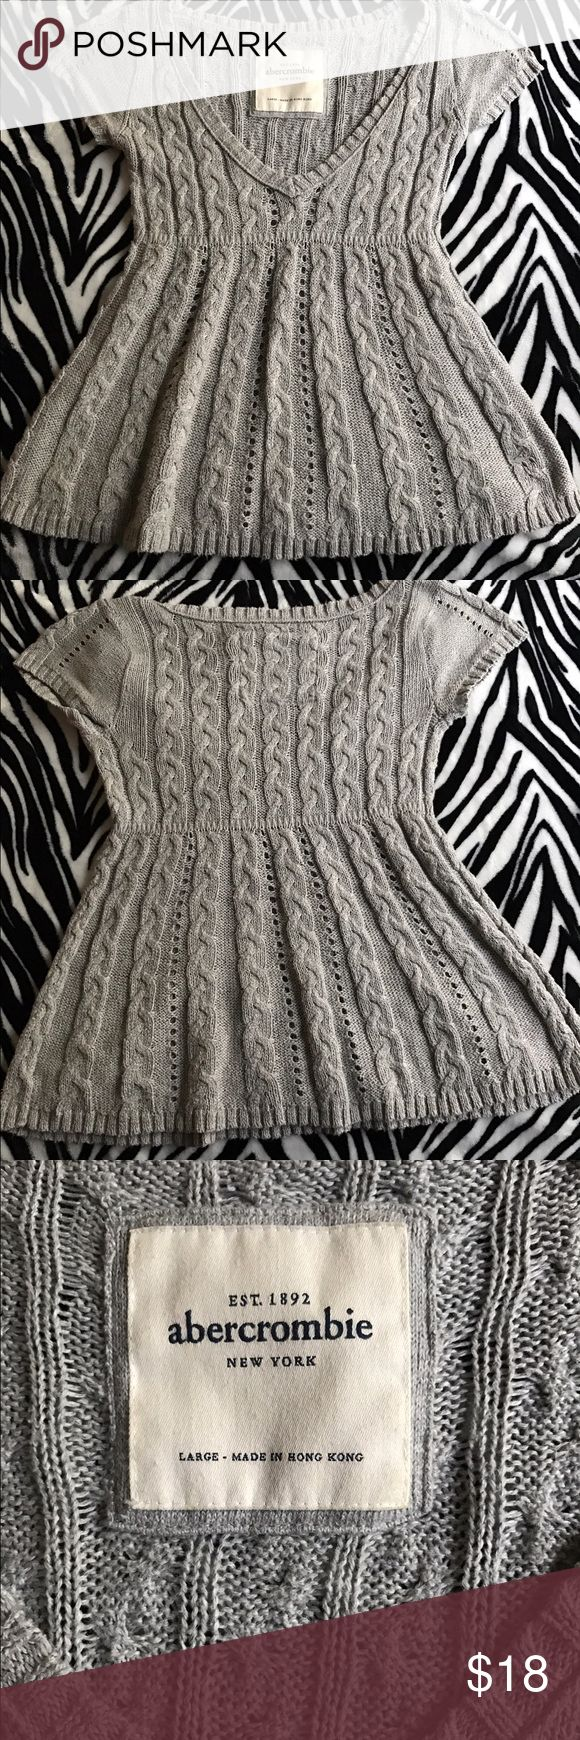 Gray Abercrombie Sweater for Kids This is just adorable and reminds me of doll clothes! Couple this with some leggings and you have one stylish kid! It's in perfect condition! abercrombie kids Shirts & Tops Sweaters